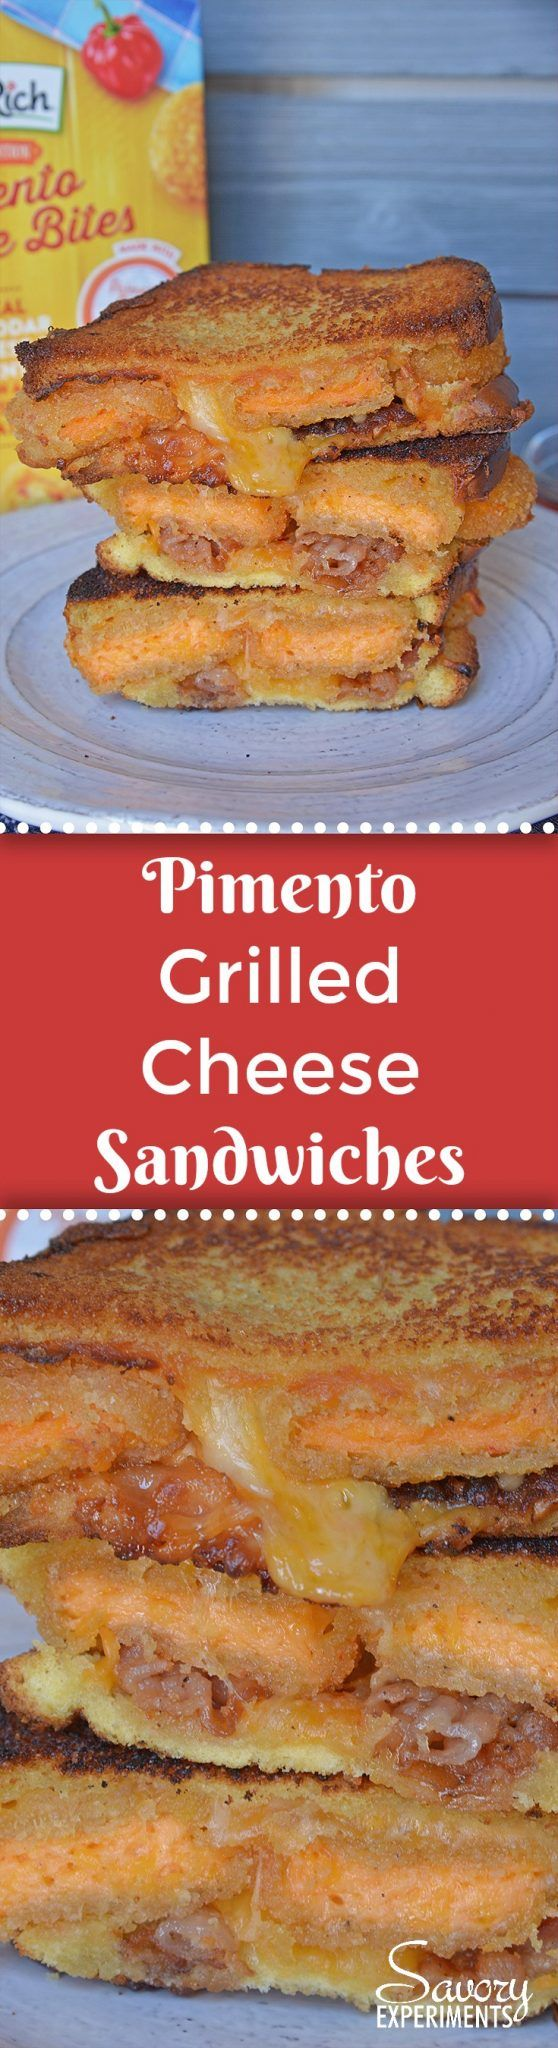 Pimento Grilled Cheese Sandwiches are the ultimate grilled cheese recipe. Zesty pimento cheese bites with bacon, gouda, cheddar and red pepper jelly on thick cut potato bread.#grilledcheesesandwichrecipes #pimentocheese #farmrich AD www.savoryexperiments.com